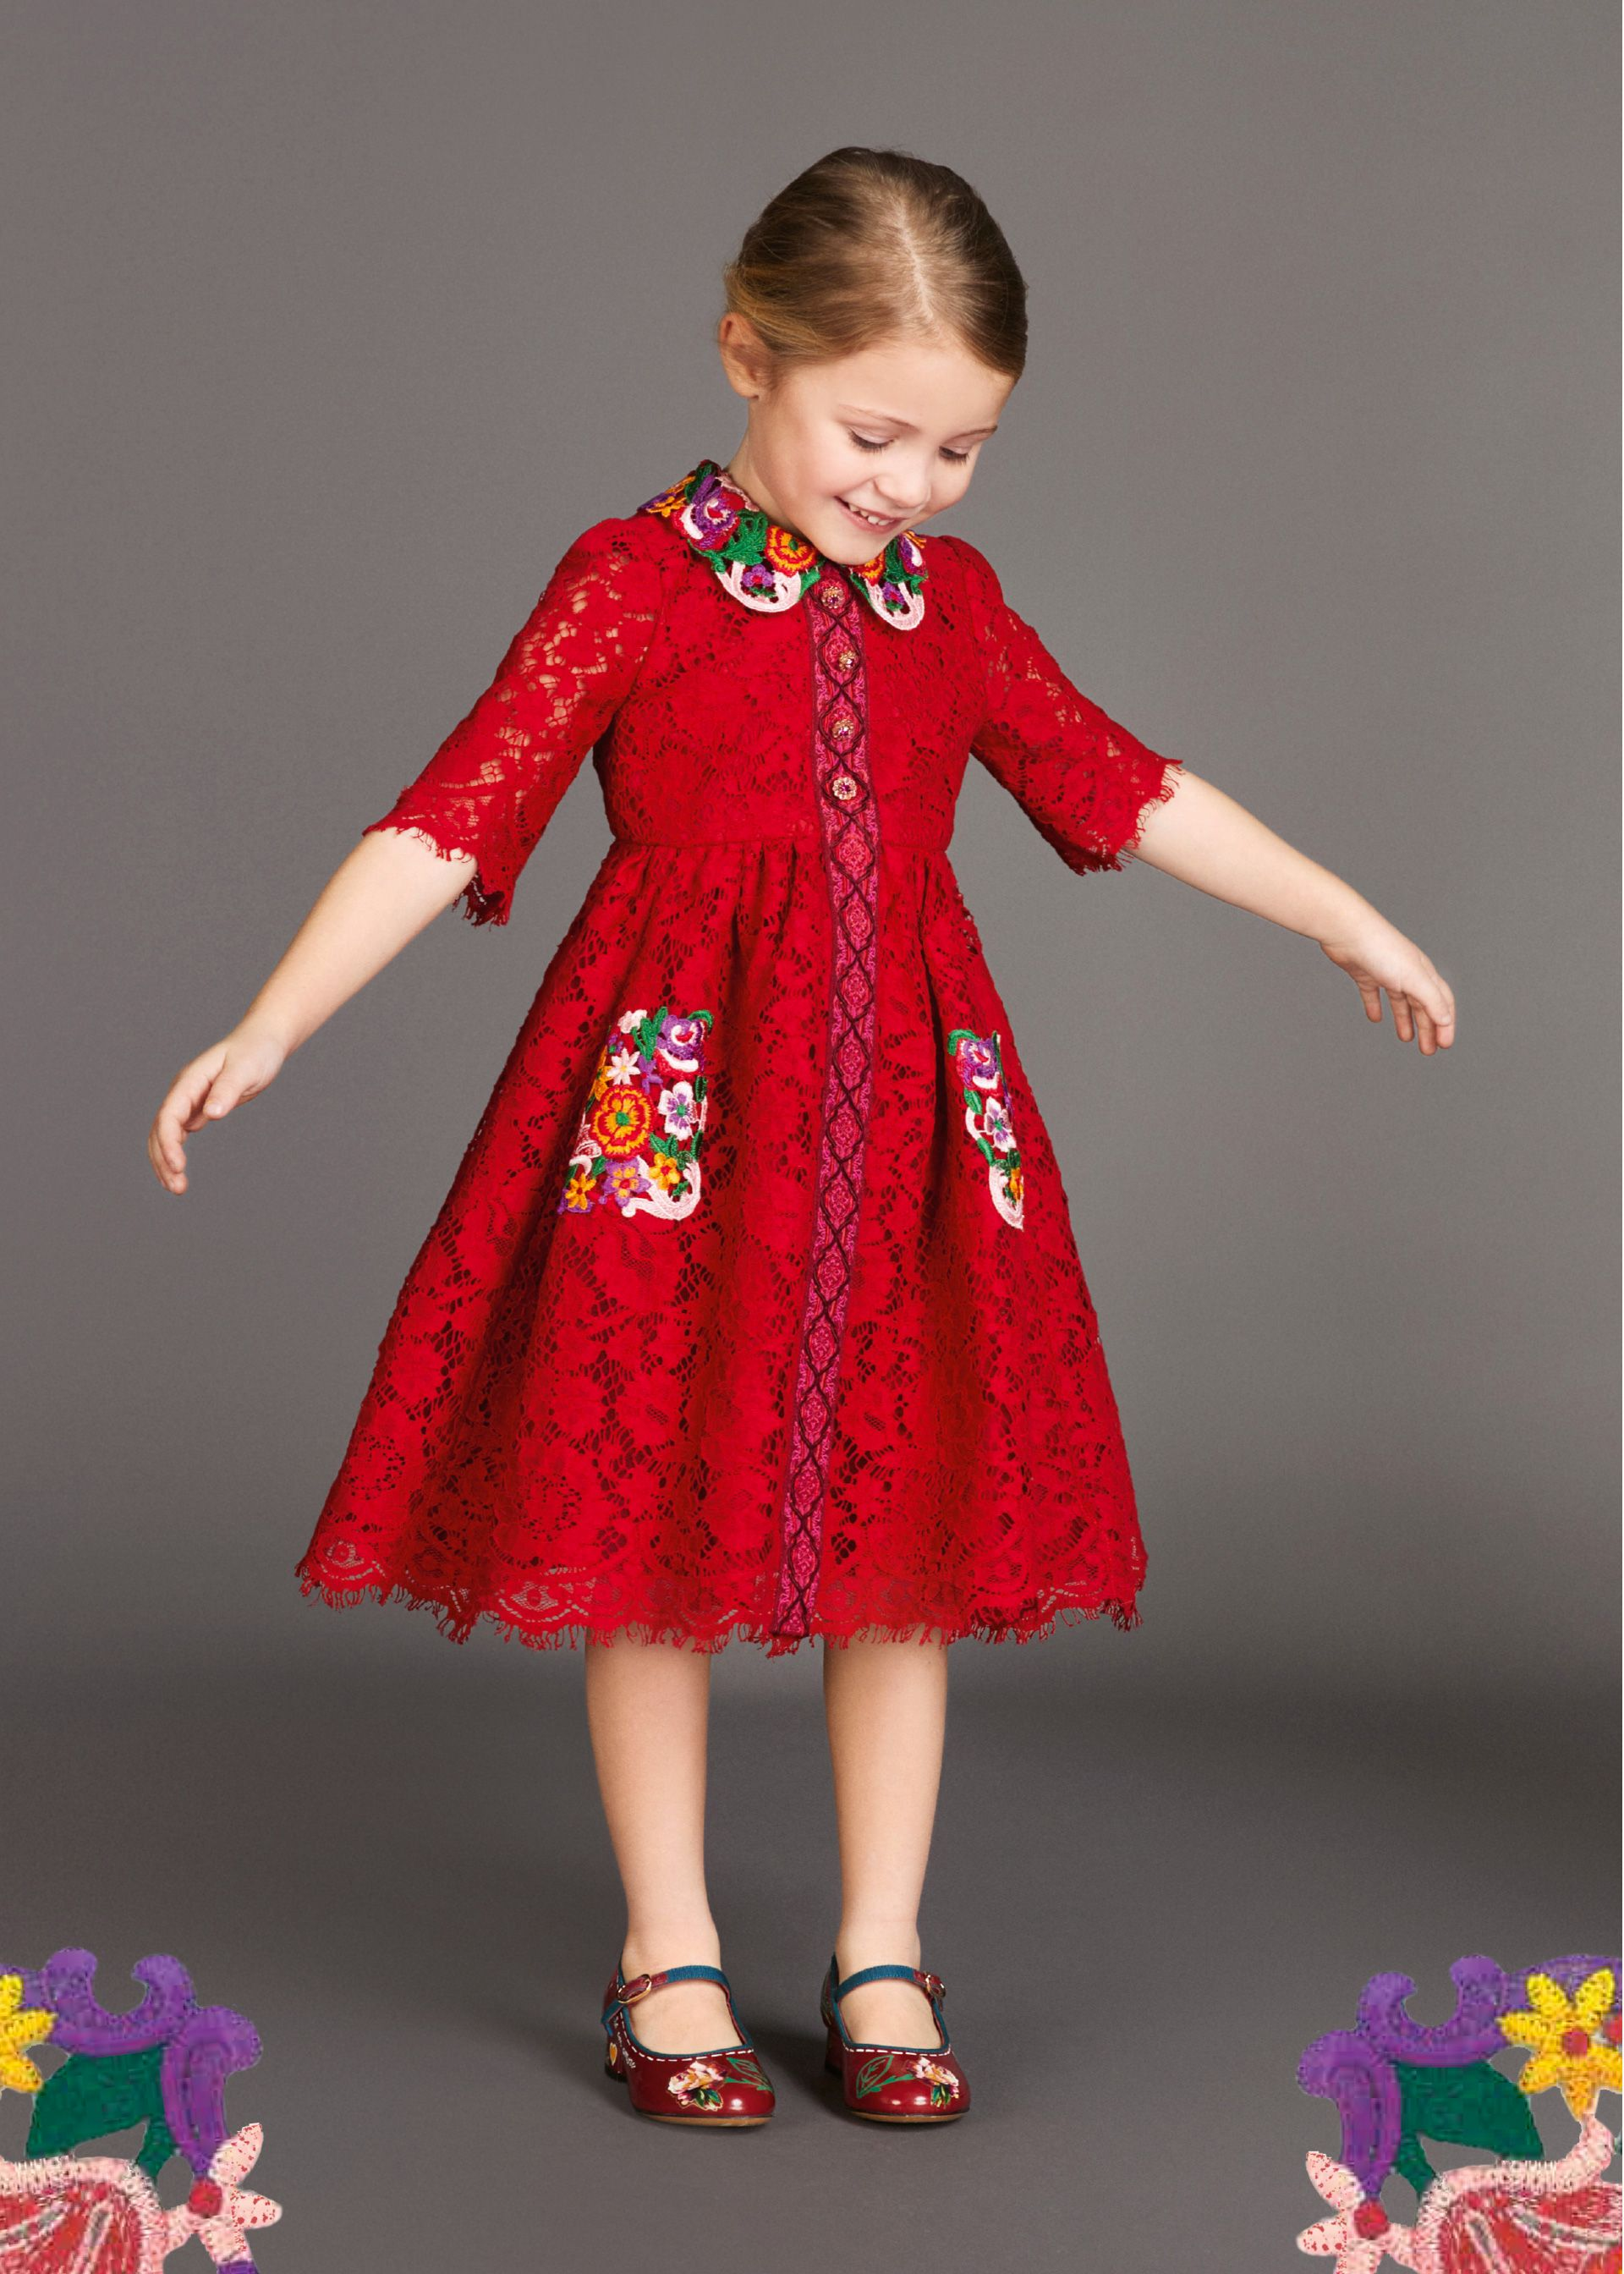 superior quality 7b899 55228 Pin on Kids Fashion